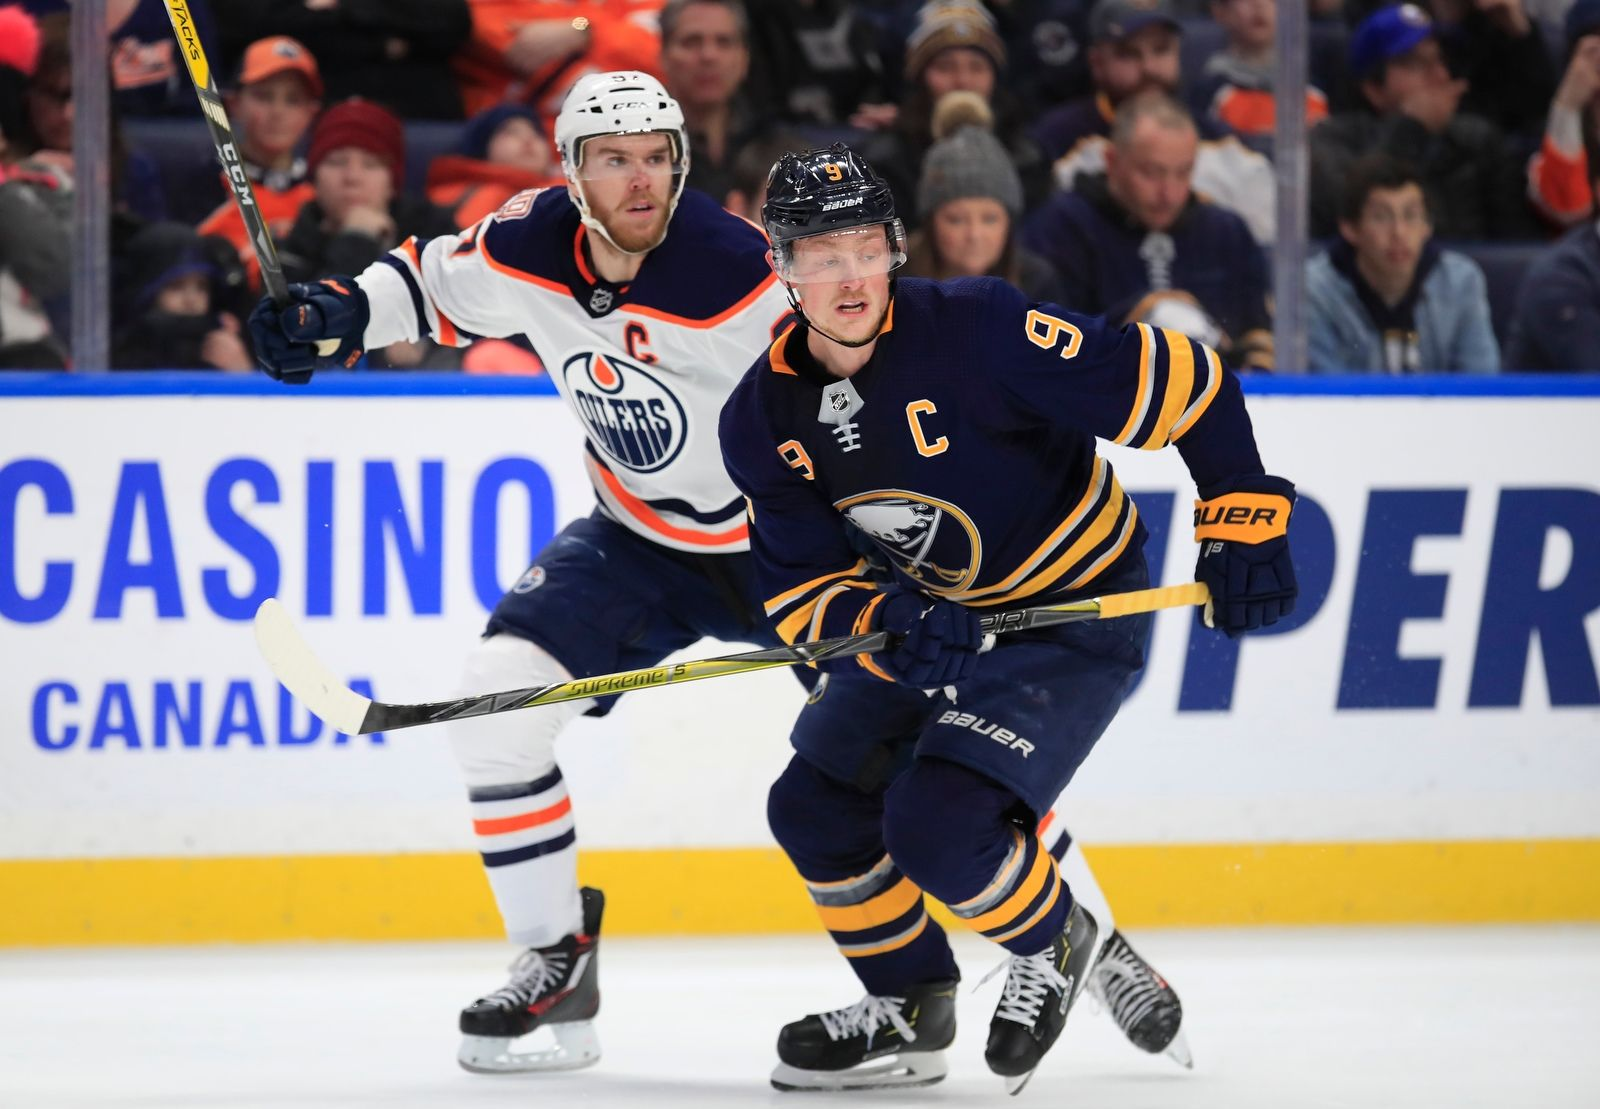 Sabres' Jack Eichel and Oilers' Connor McDavid during the first period.